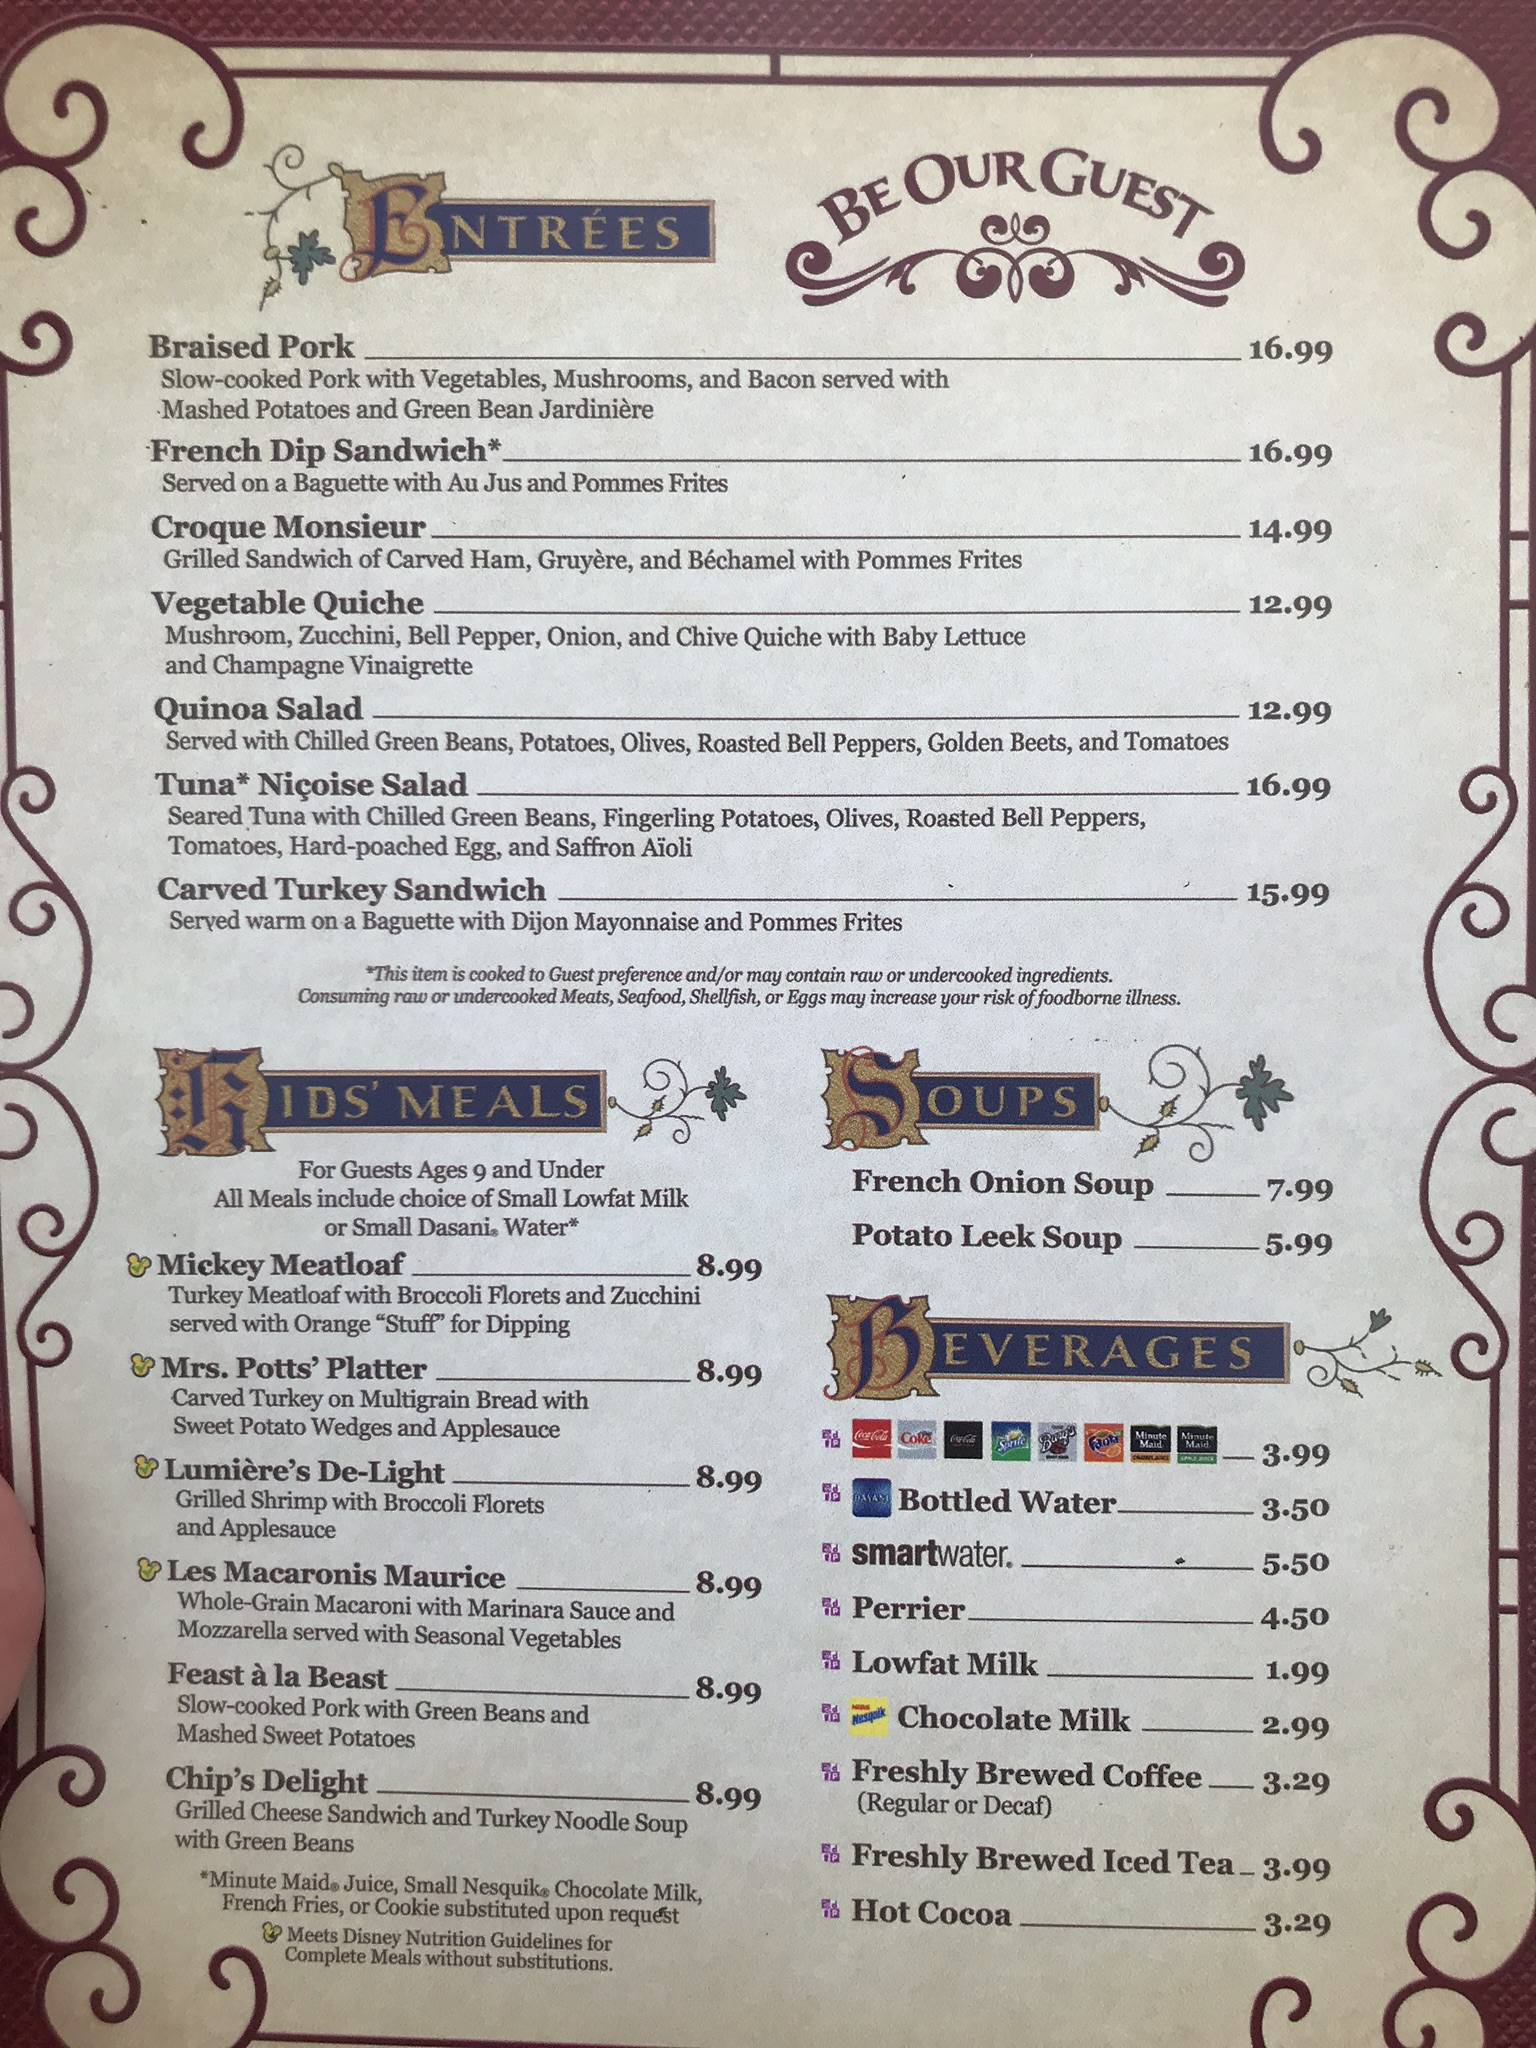 lunch menu at be our guest